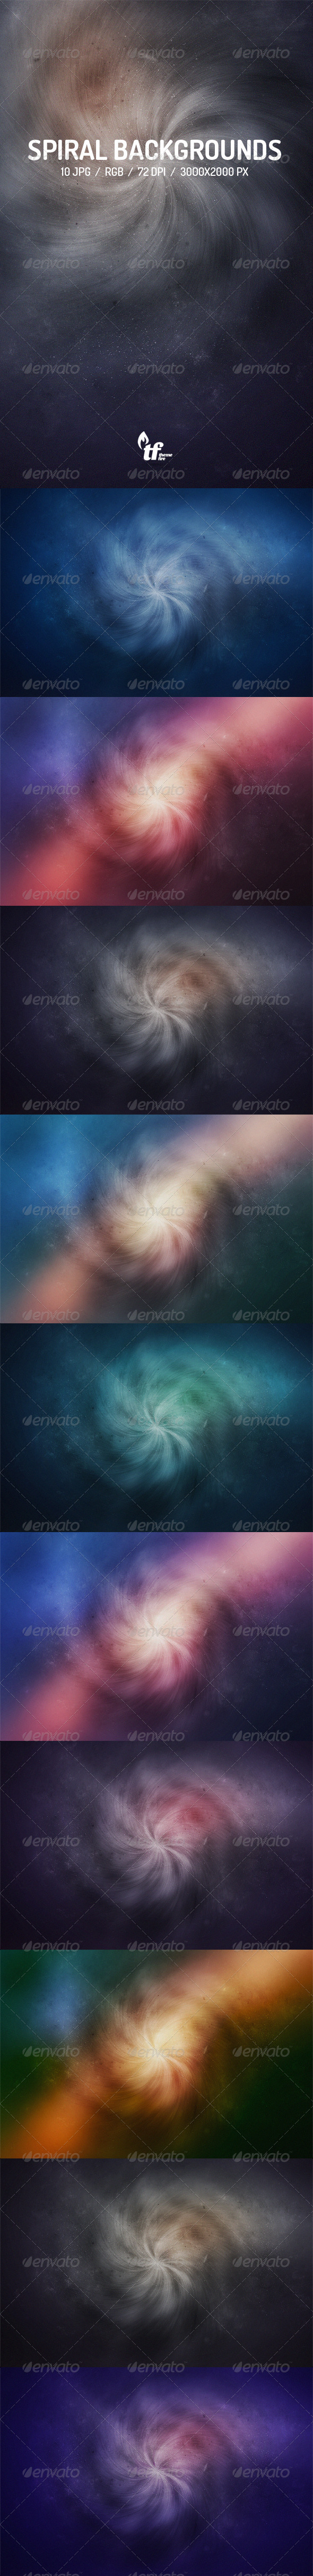 GraphicRiver Spiral Backgrounds 7585021